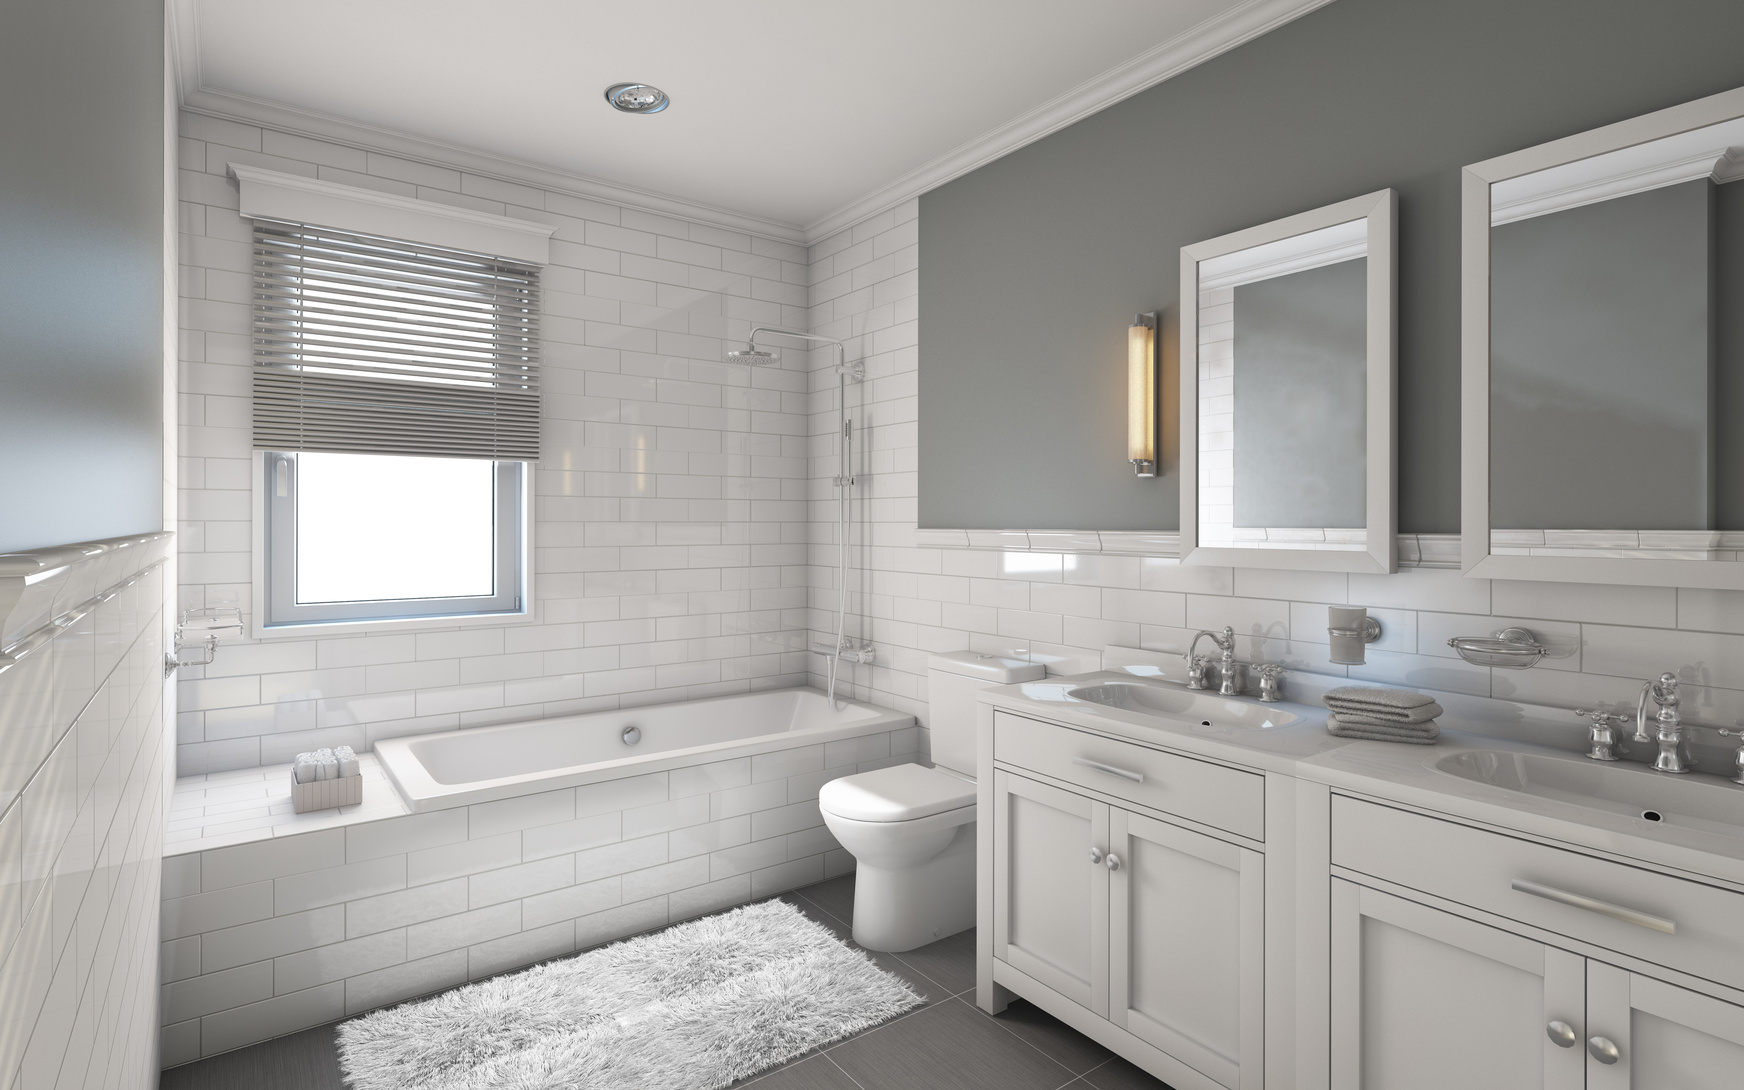 2021 Bathroom Painting and Design Trends